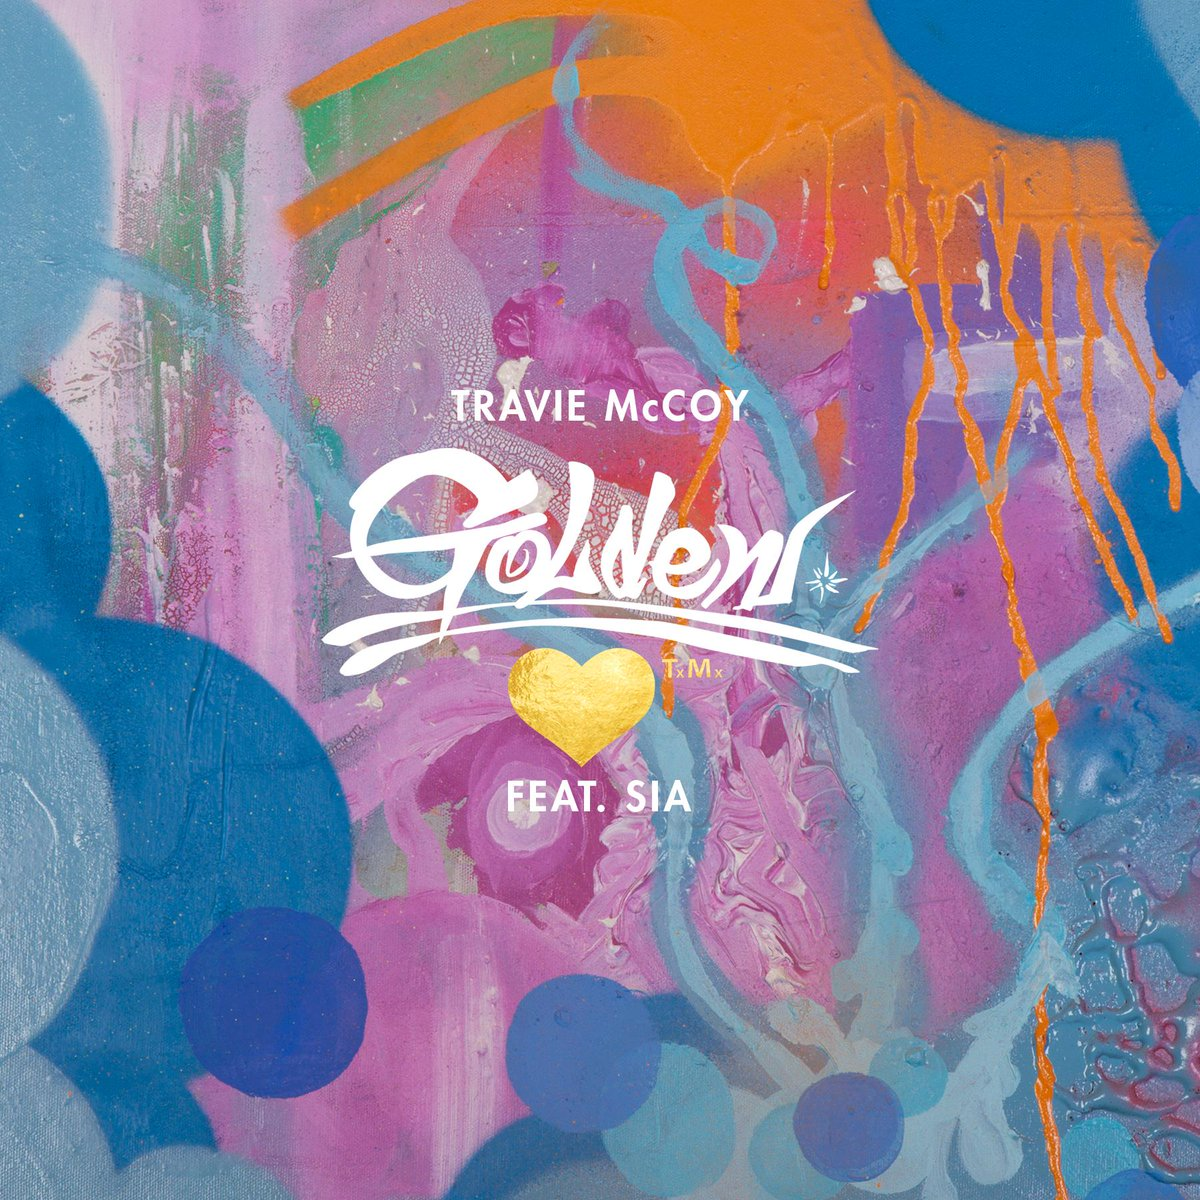 Your boy is BACK!! I'm releasing my brand new single #GOLDEN feat. the ONE, the ONLY @SIA on June 15th on DCD2/FBR http://t.co/nY1LMTKtDz